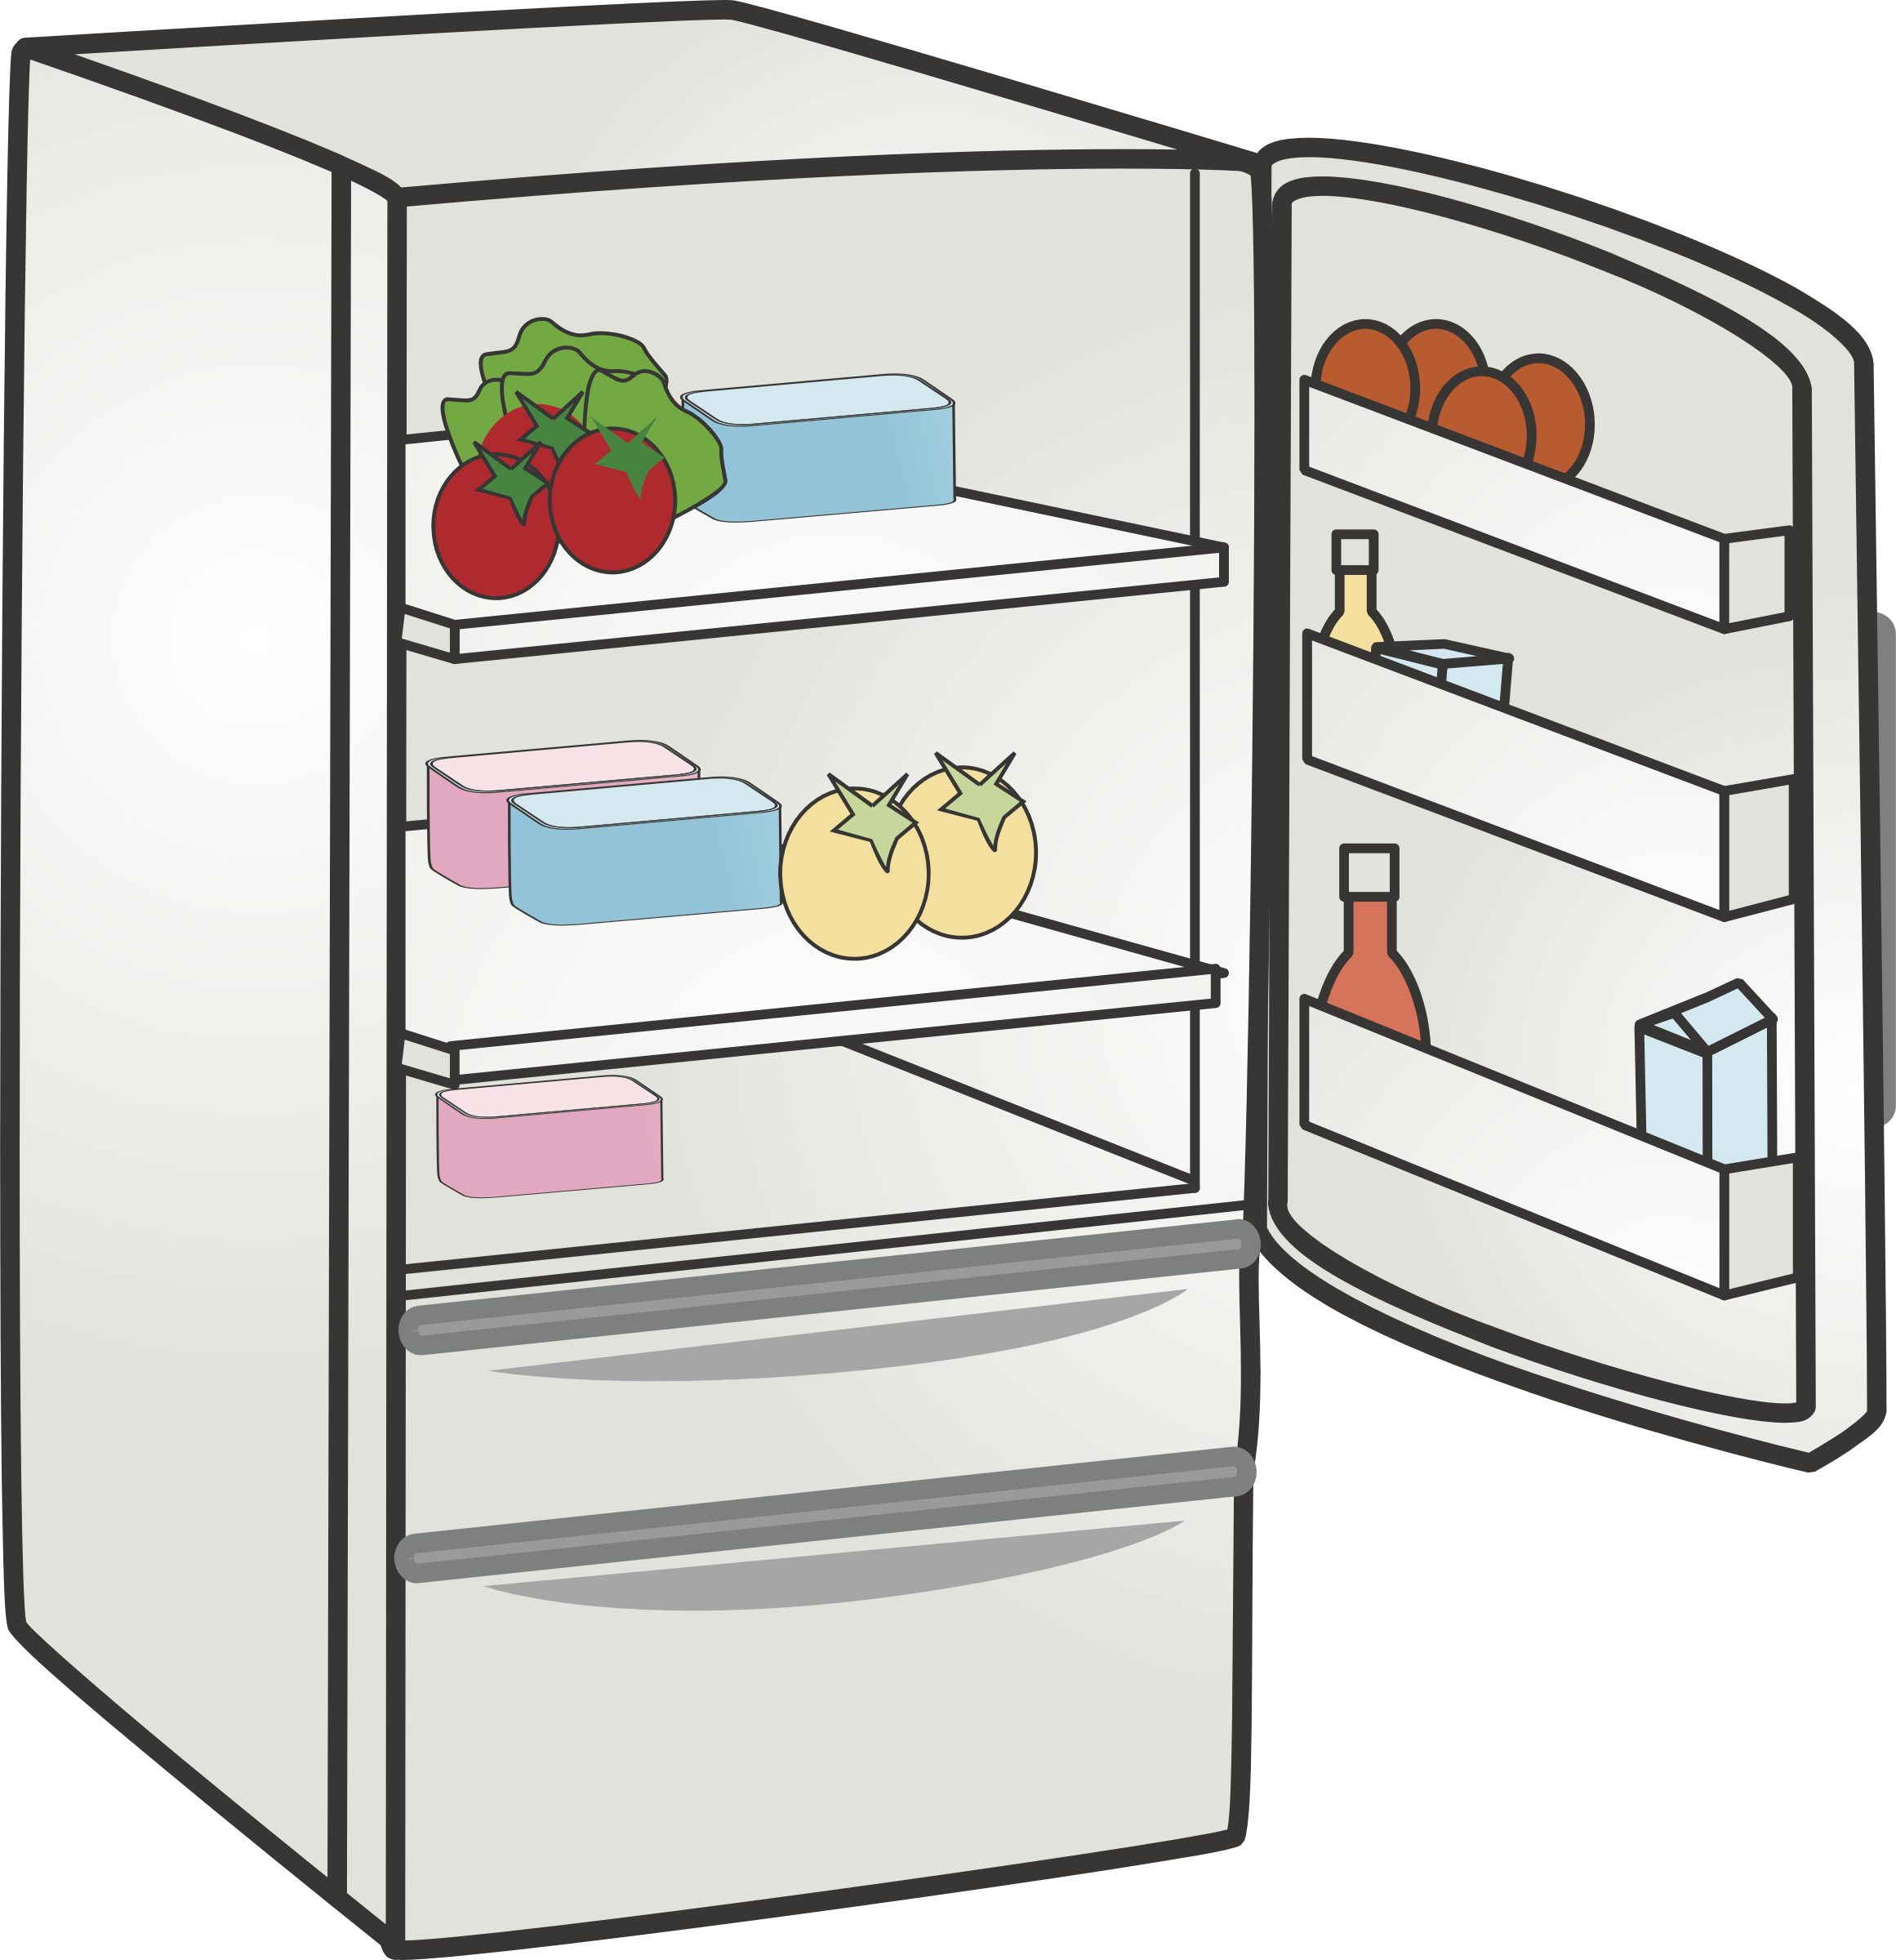 clip black and white download Fridge clipart. Refrigerator big image png.